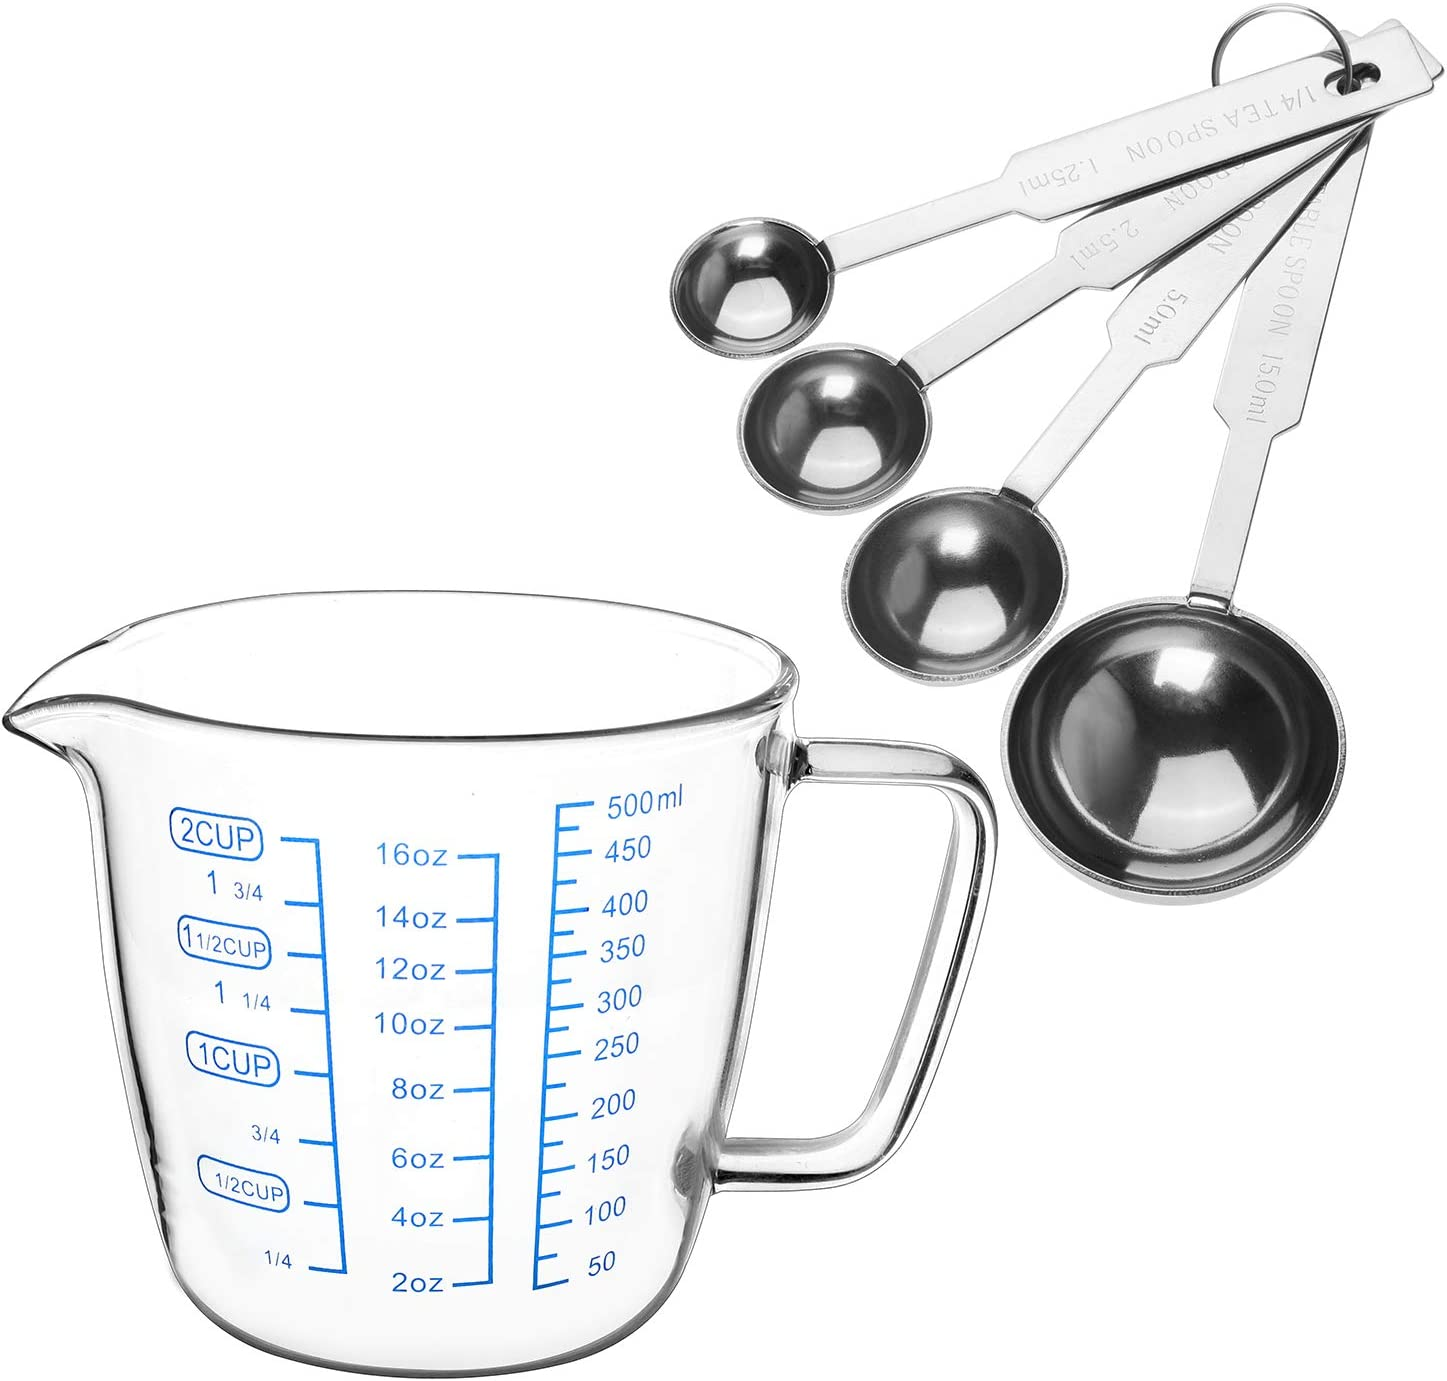 Measuring Cups and Measuring Spoons , Glass Measuring Cup ( 16 OZ - 500ml- Includes 1-cup, 2-cup) -Clear, and Stainless Steel Measuring Spoons Set 4 Piece